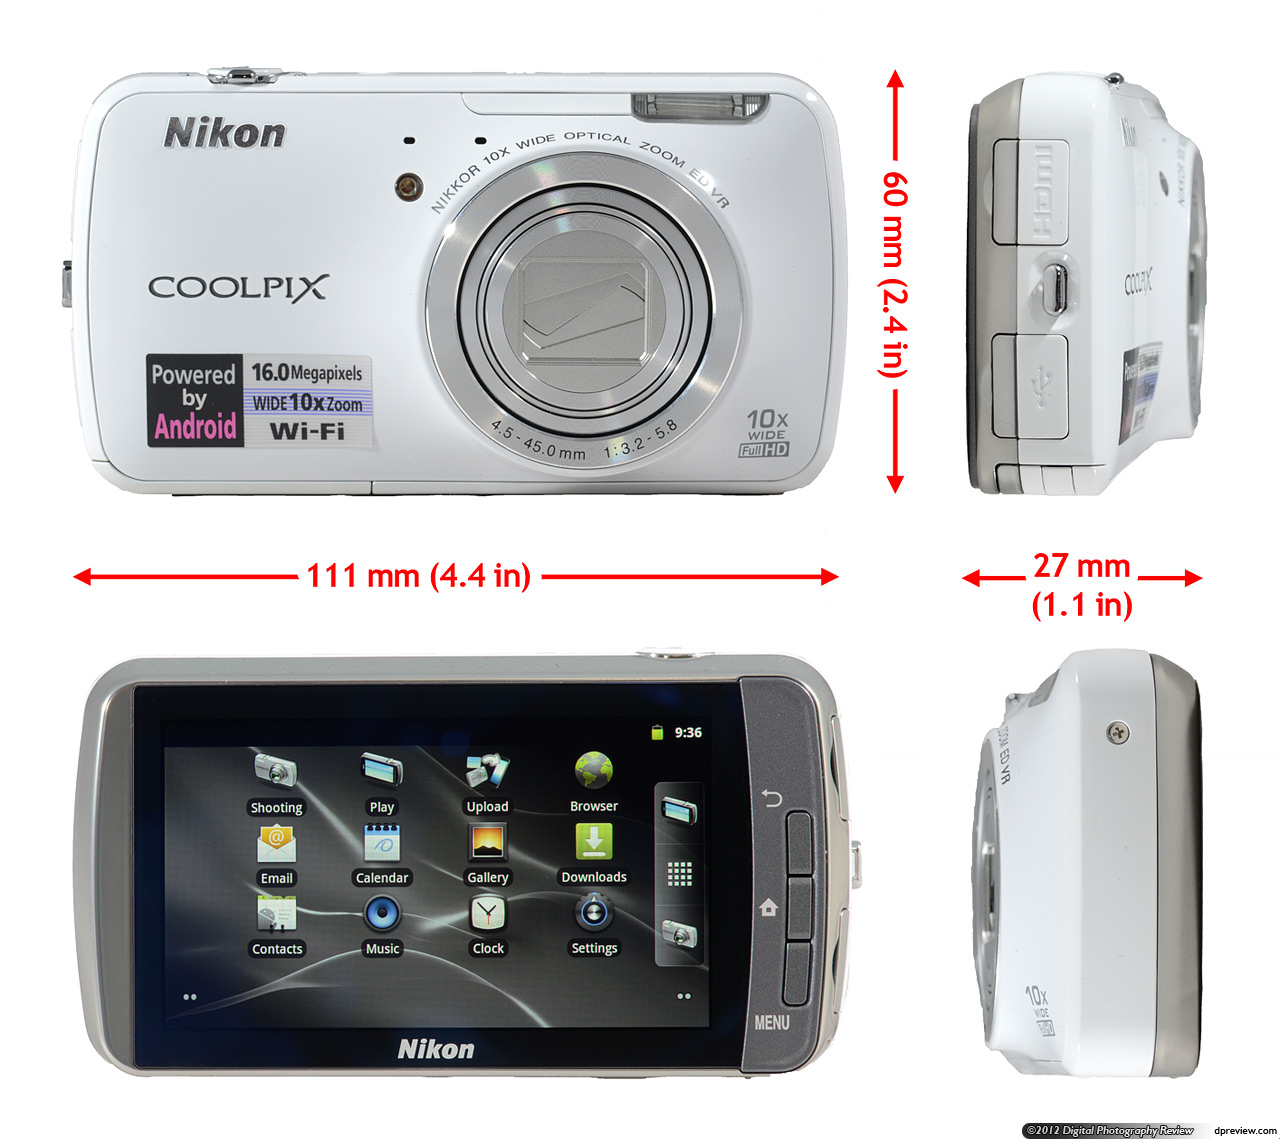 Nikon Coolpix S800c Android camera first look: Digital